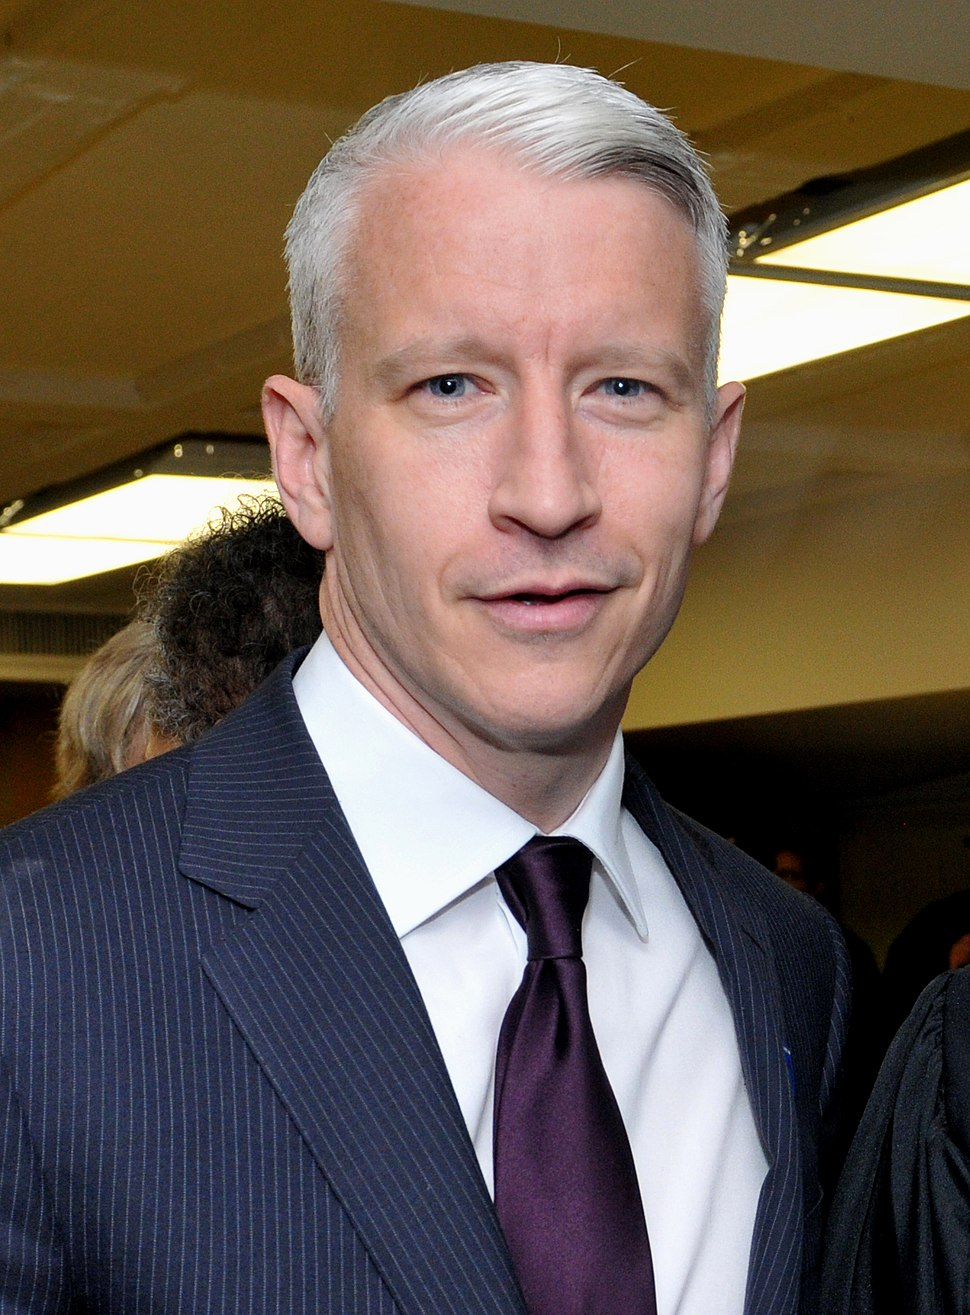 Anderson Cooper at Tulane University